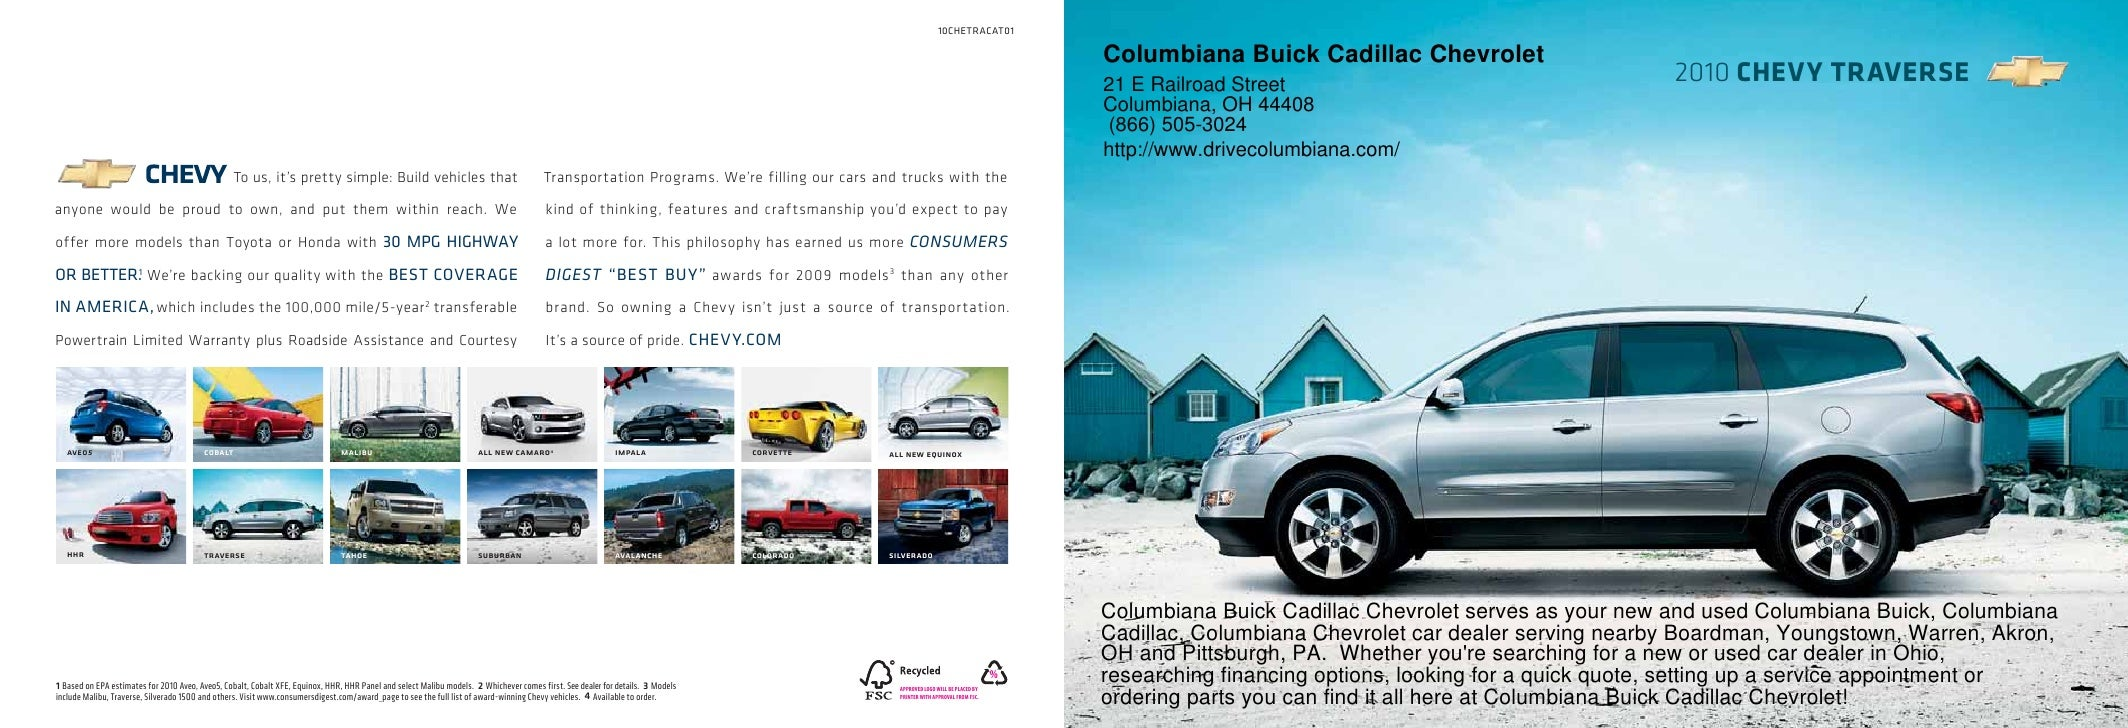 Captivating 2010 Columbiana Buick Cadillac Chevrolet Traverse Youngstown OH.  10CHETRACAT01 .